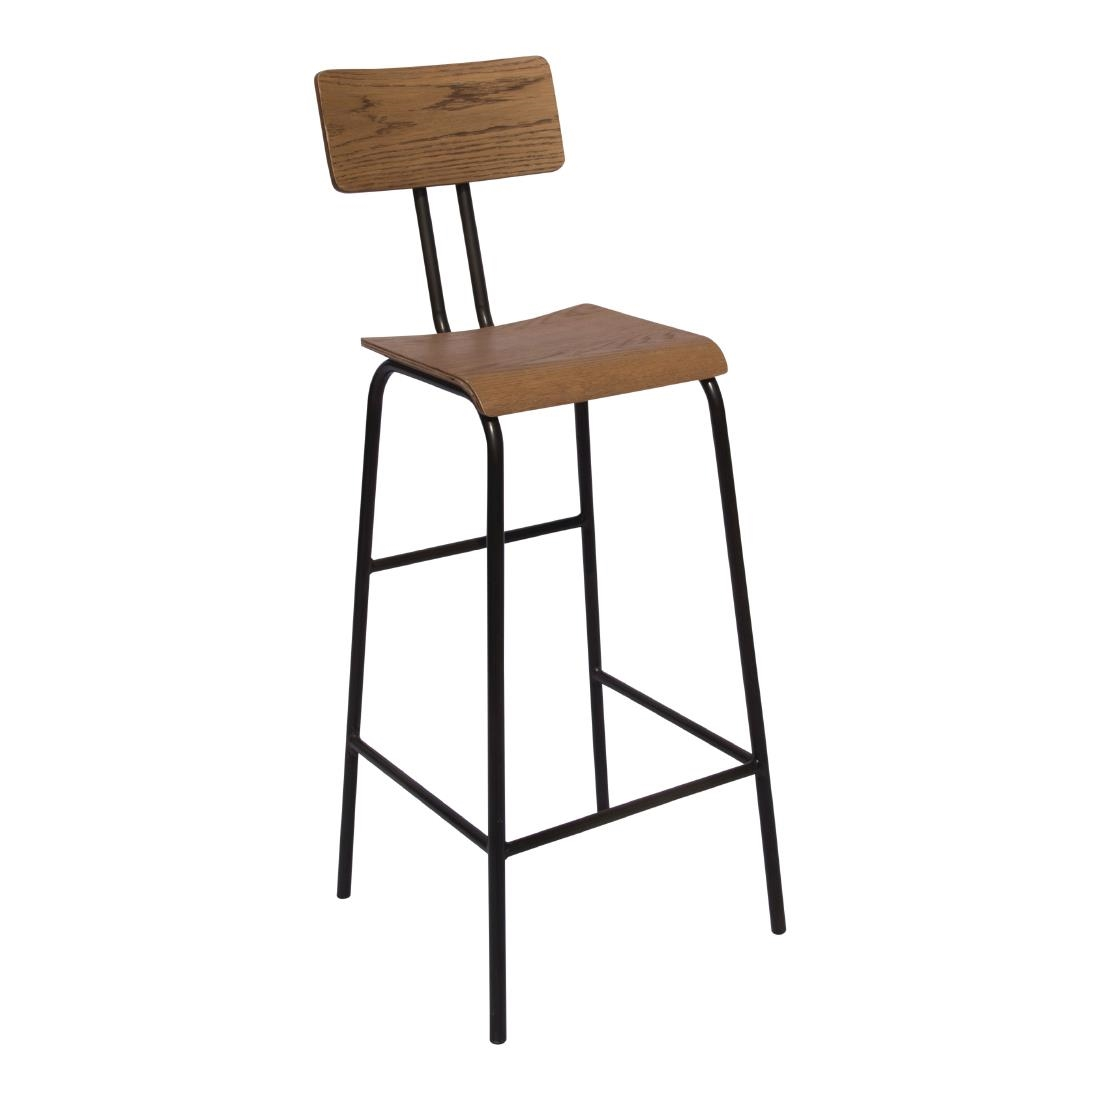 2x Dalerio Wood And Metal High Bar Stool With Back Fully Assembled Industrial Aged Urban Look Style